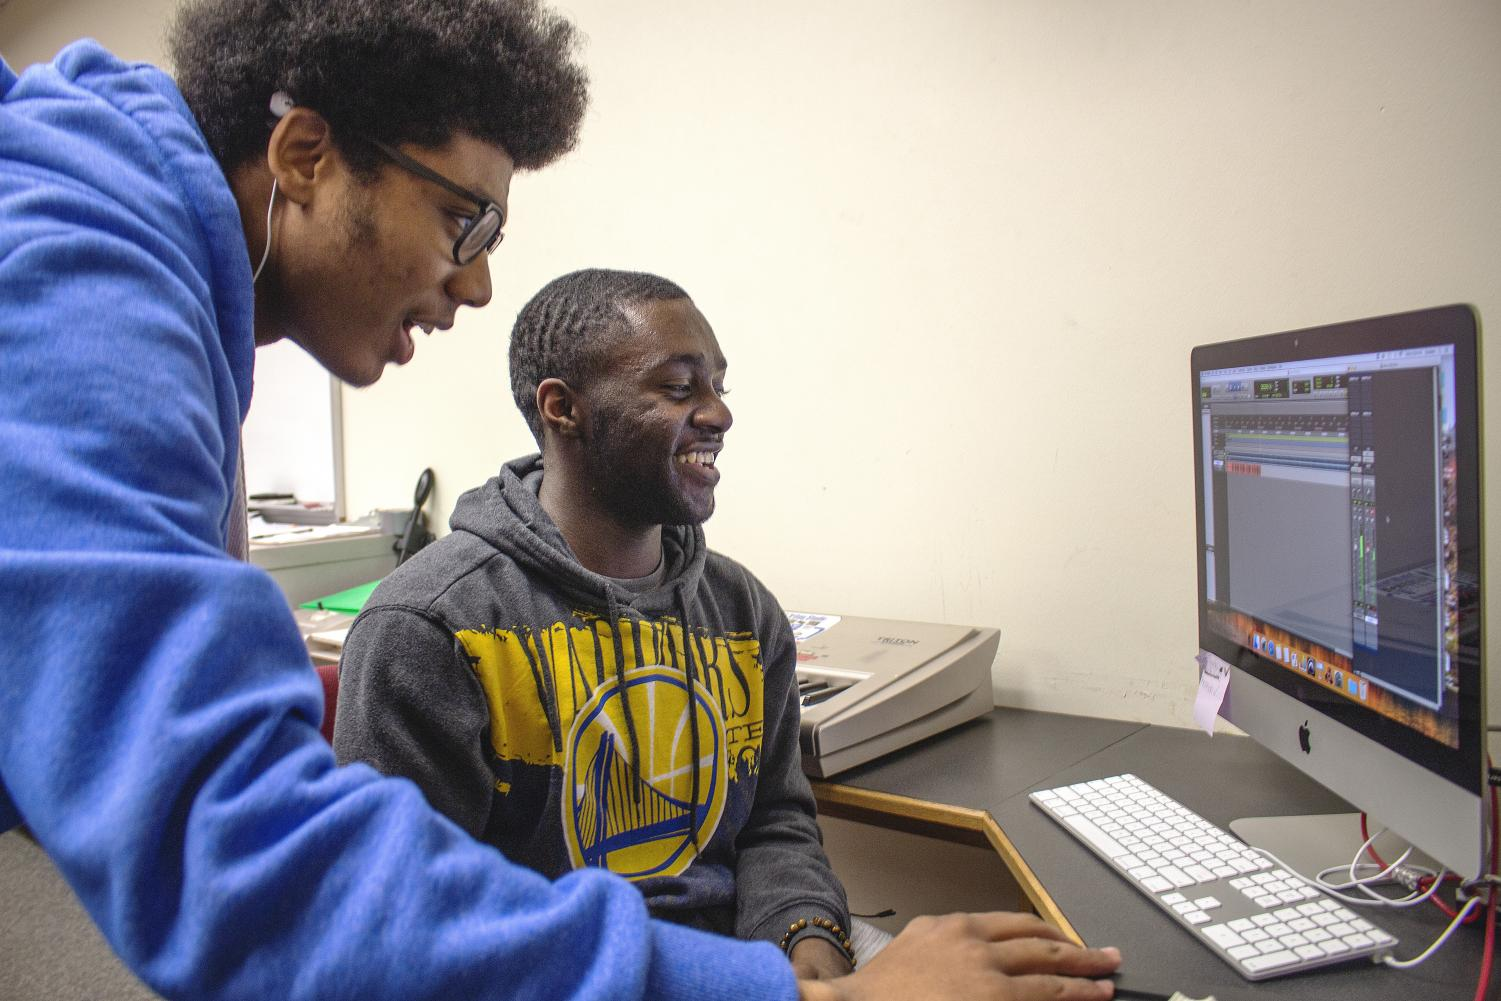 Los Medanos College Recording Arts students Devin Mason (left) and TJ Holloway work on incorporating a melody from a bass guitar into a project.